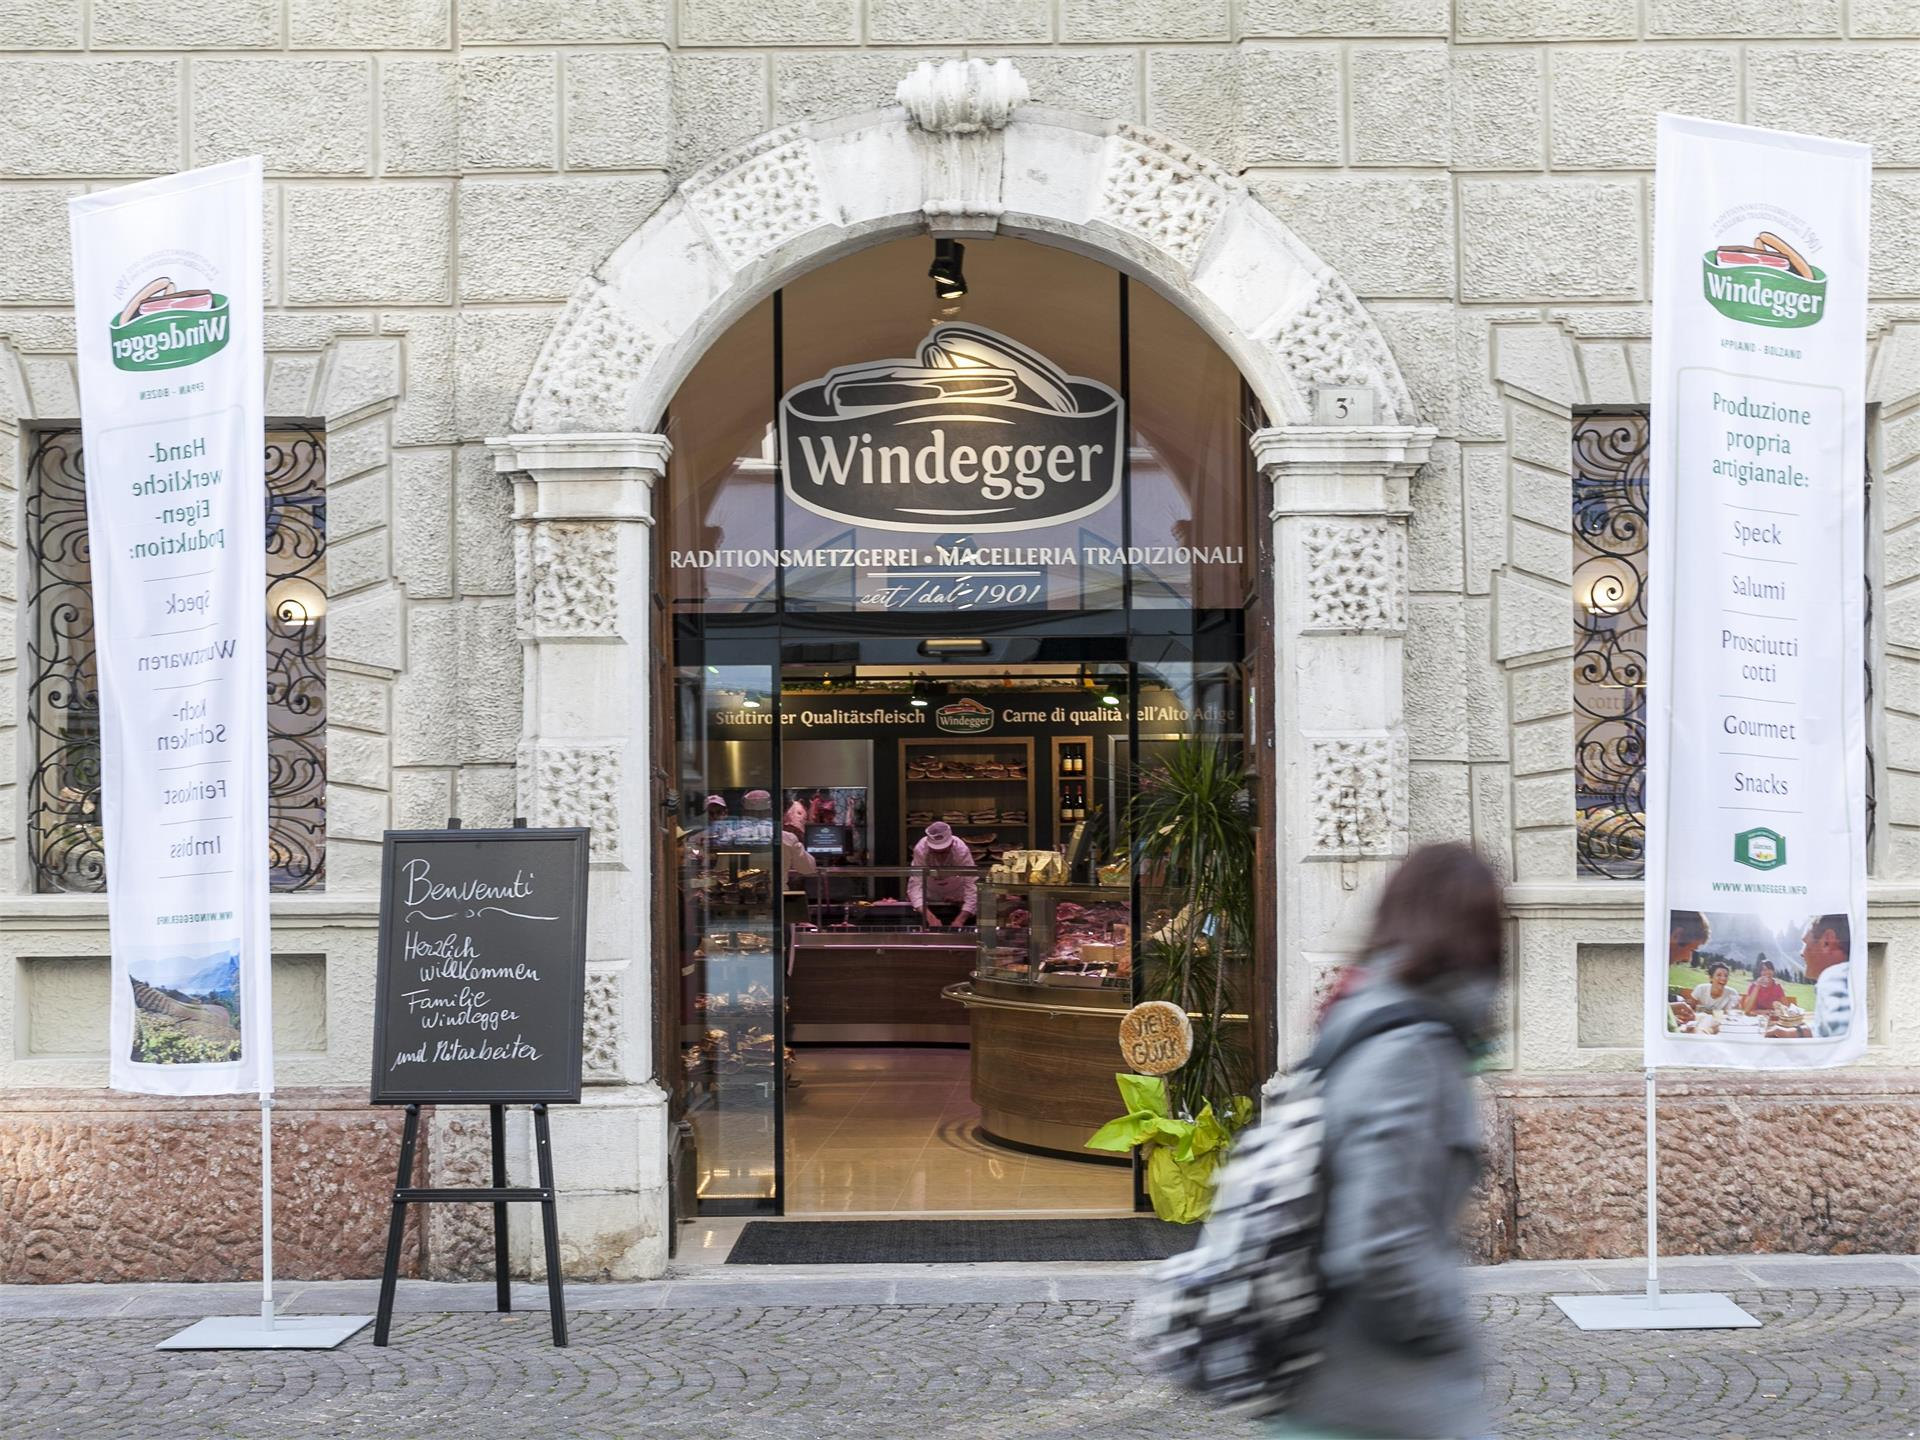 Butcher's shop Windegger